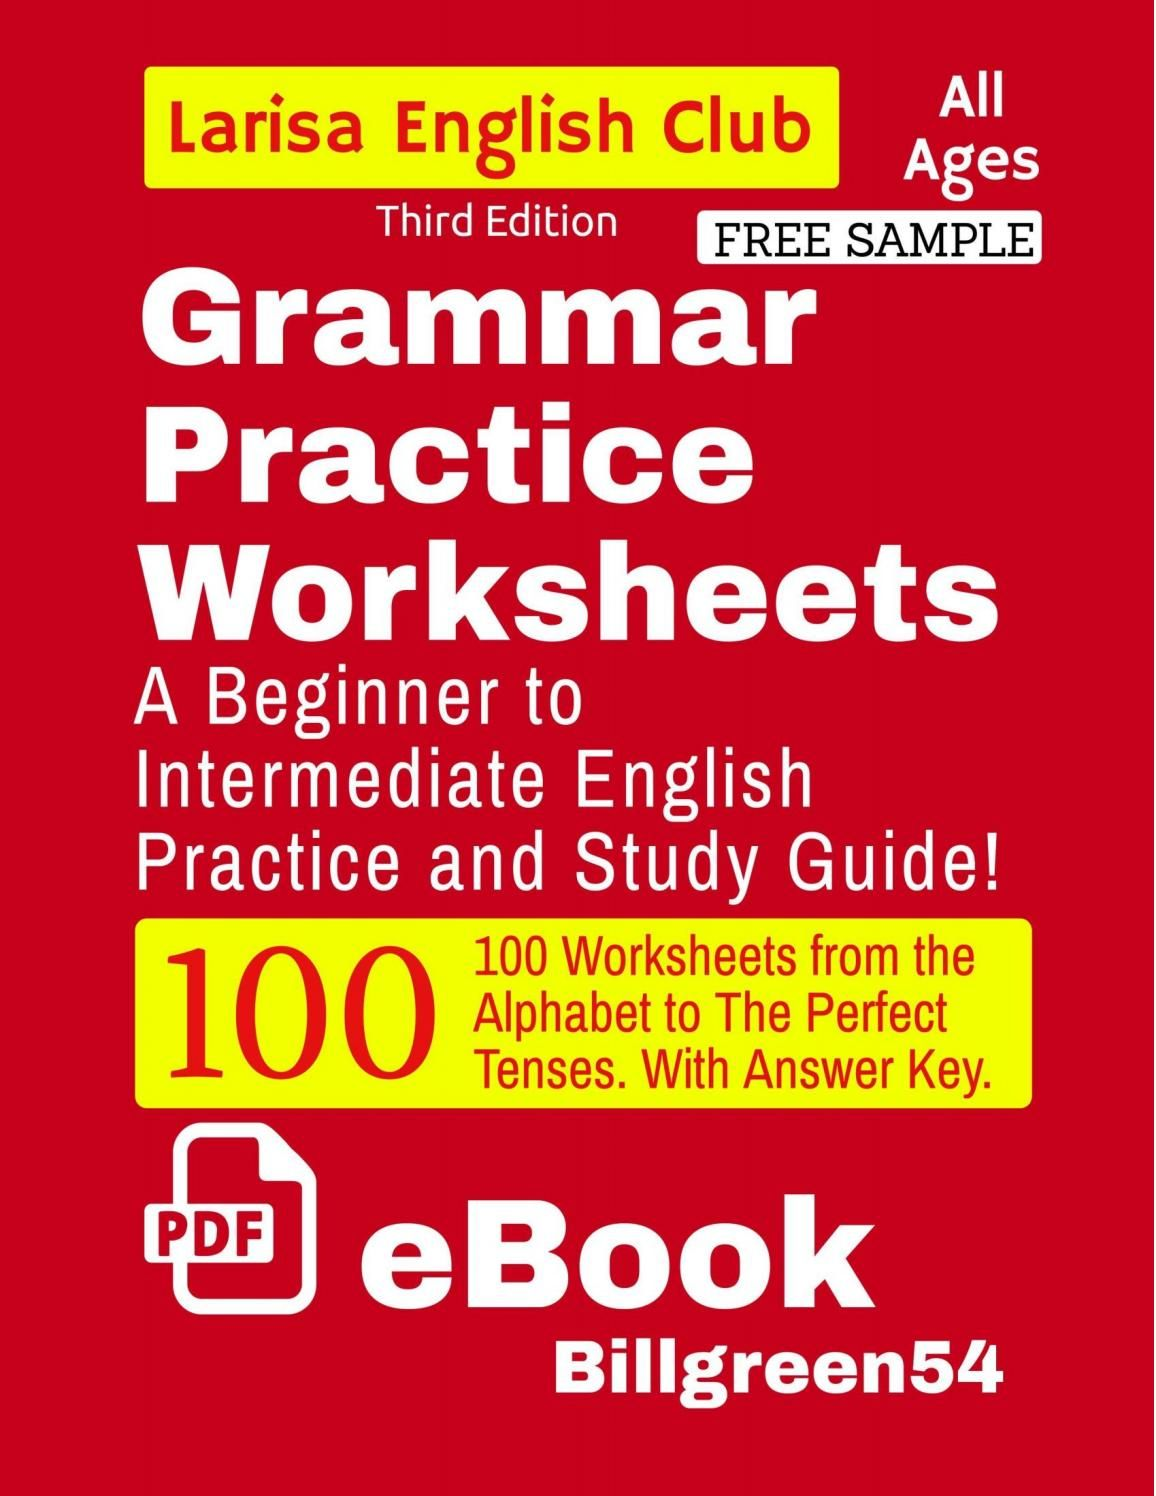 Grammar Practice Worksheets With Images